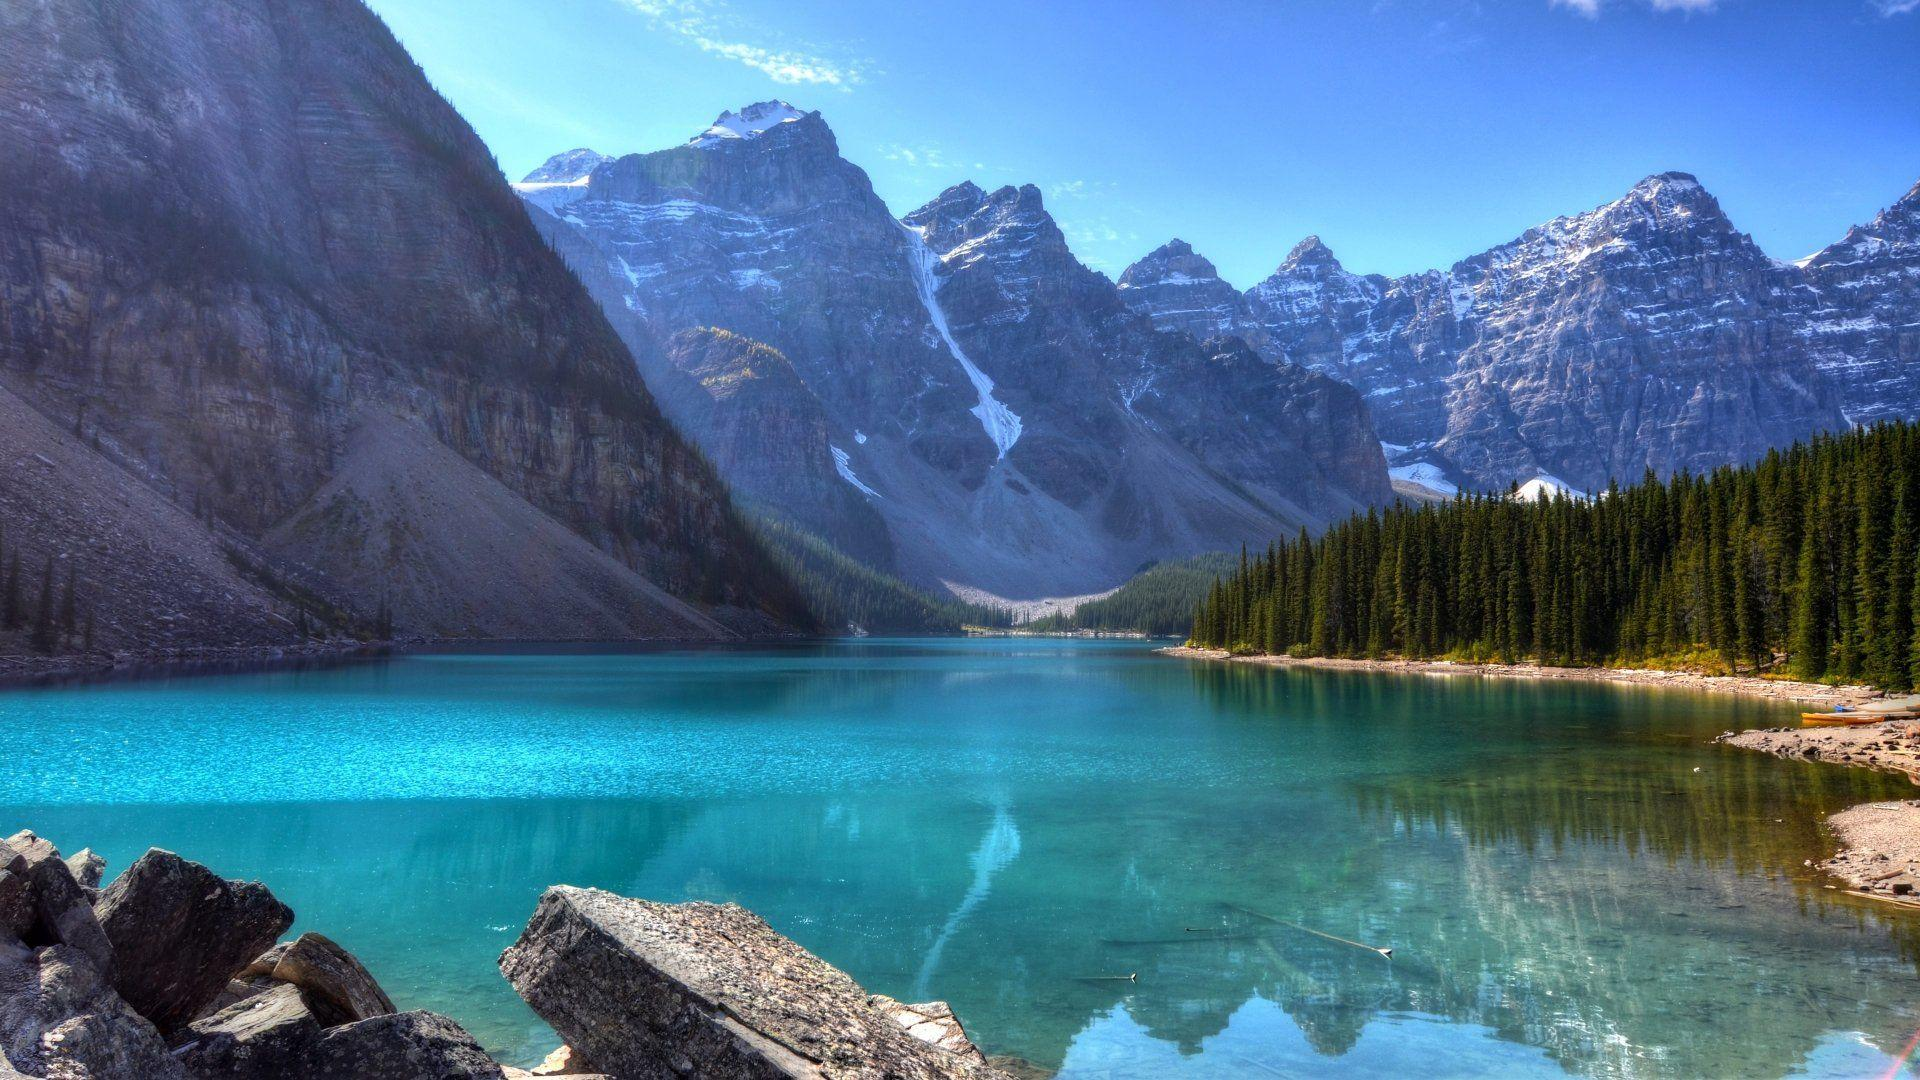 48 Banff National Park HD Wallpapers